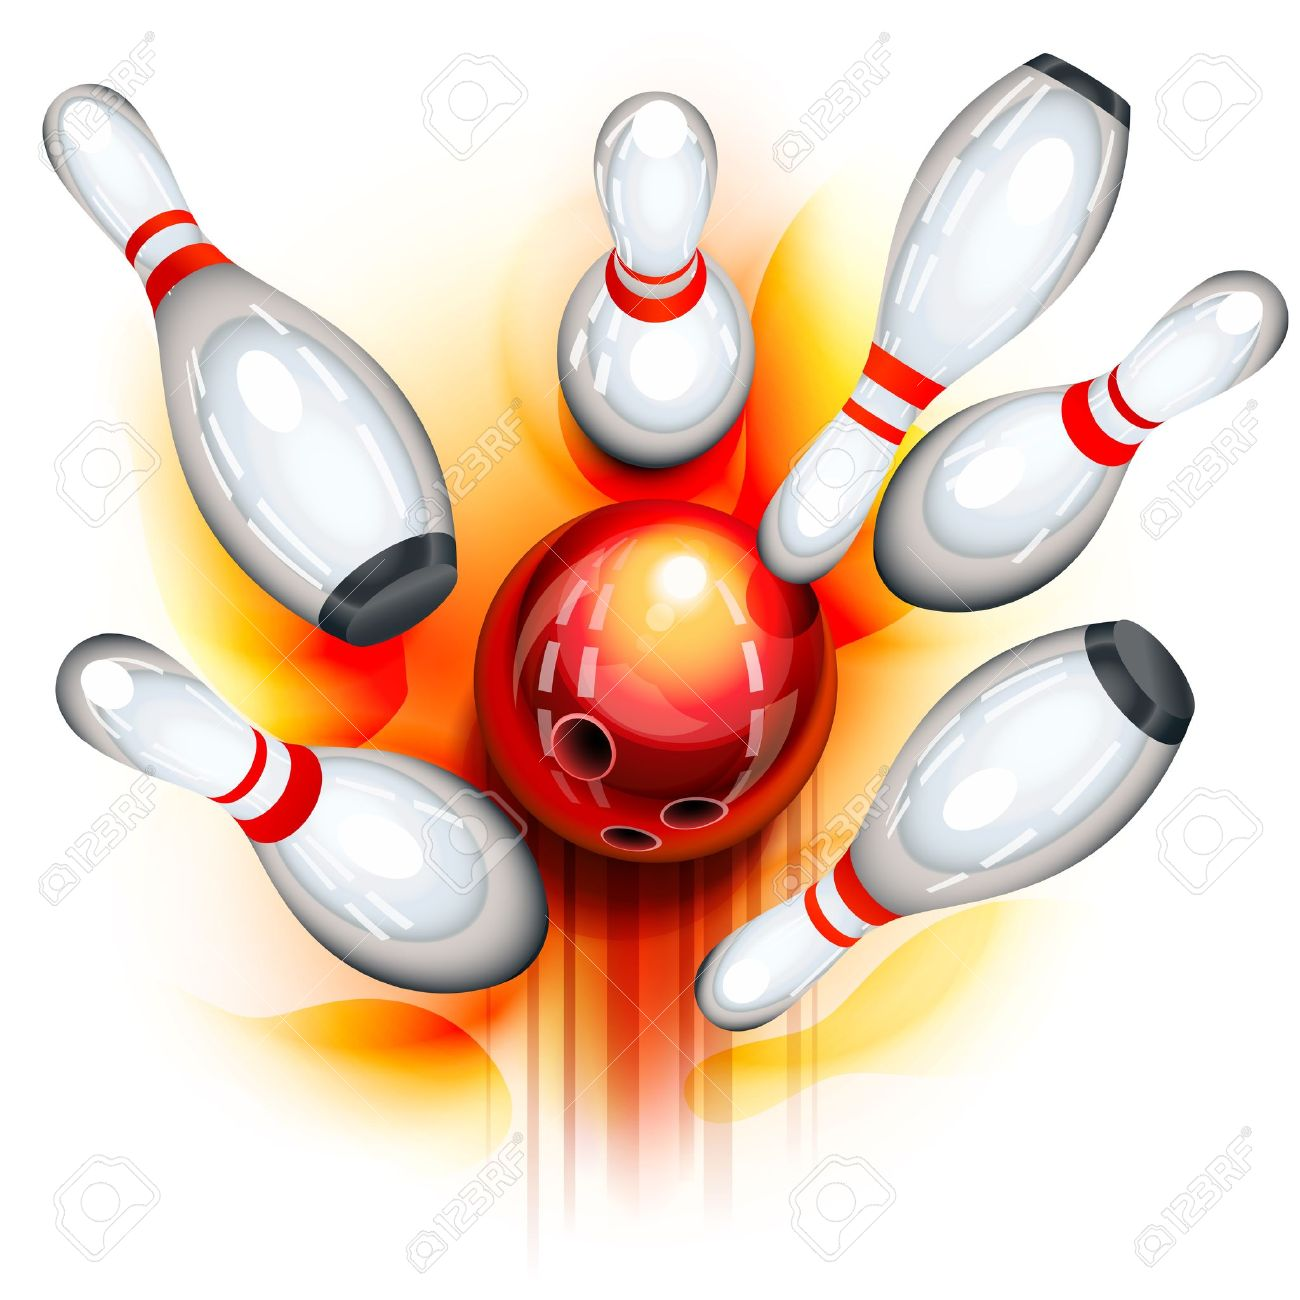 Bowling Balls Images